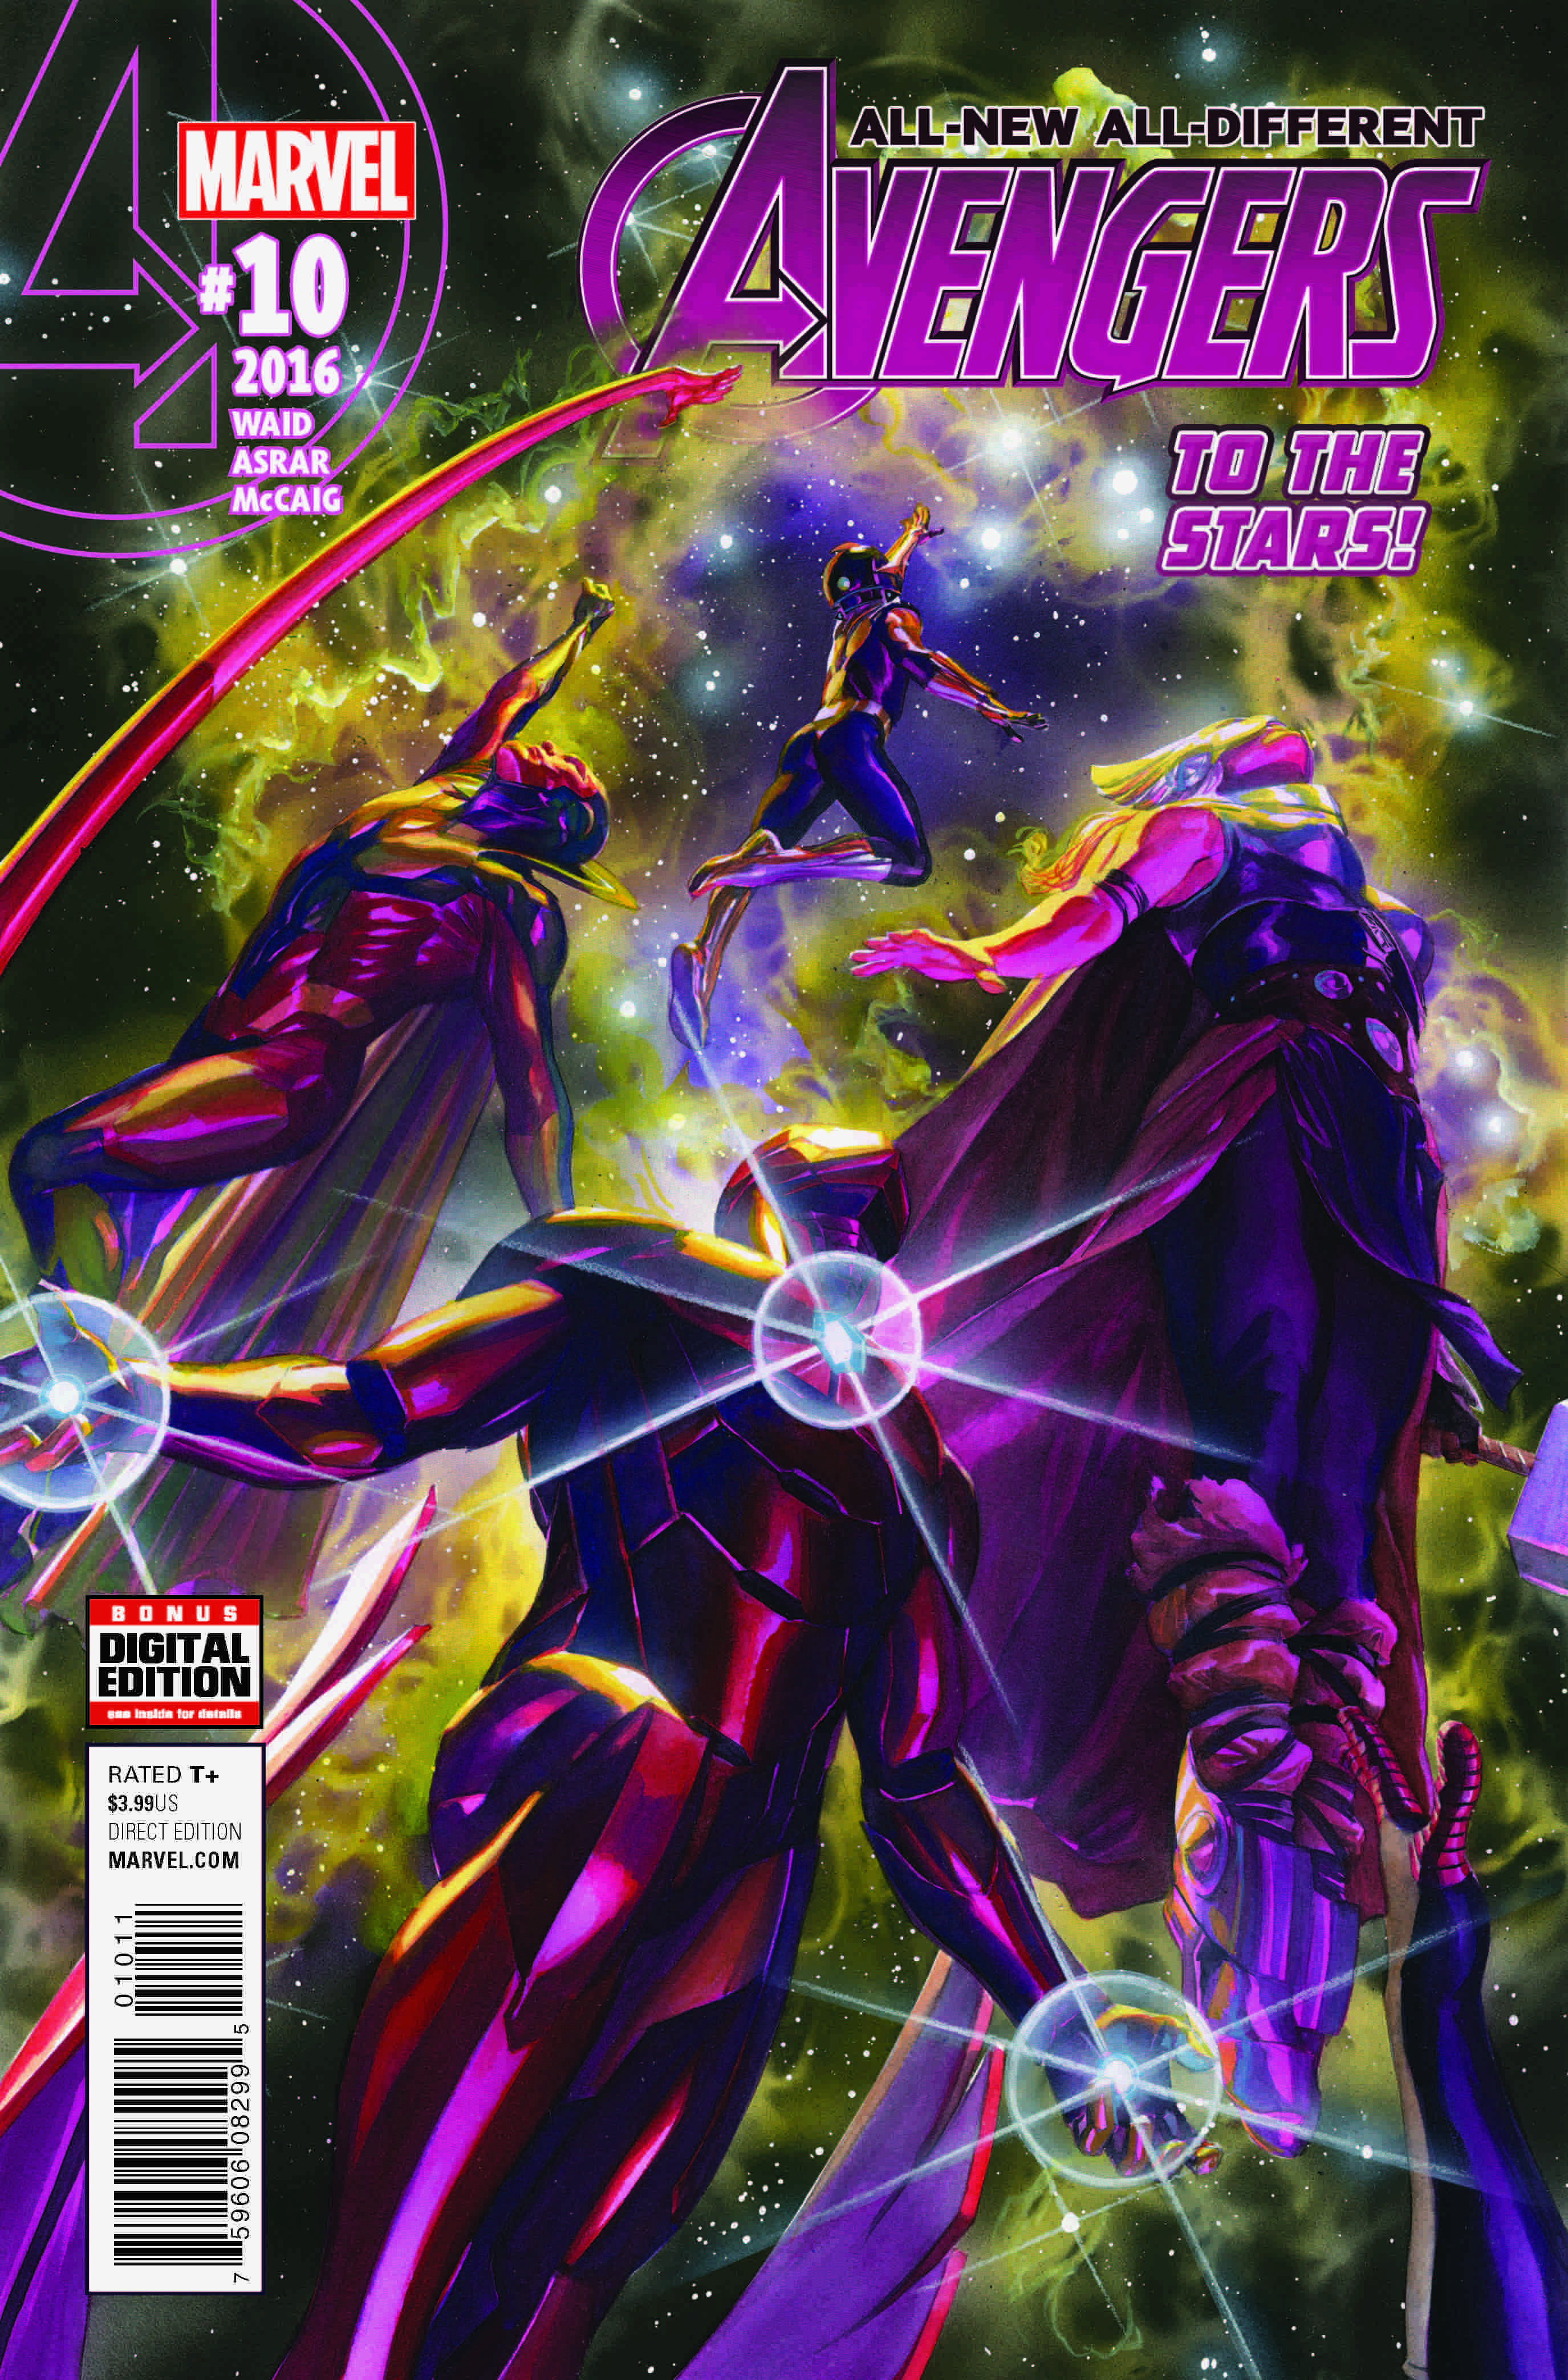 Marvel Preview: All New All Different Avengers #10